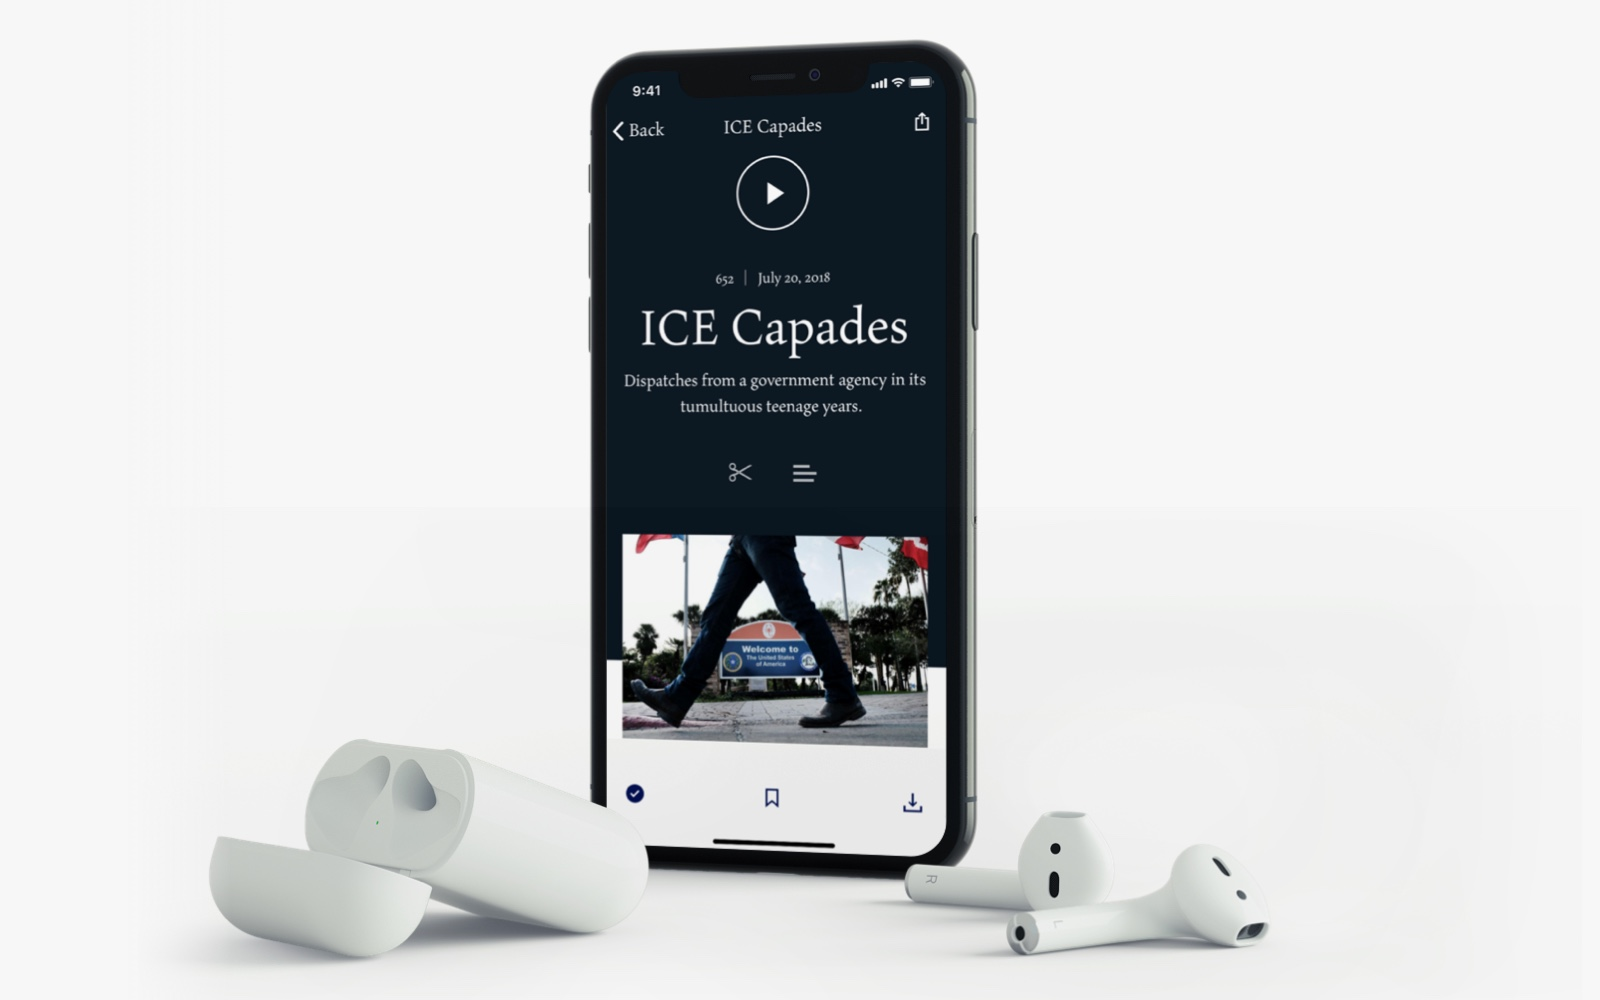 An example of the custom audio player view on iPhone X